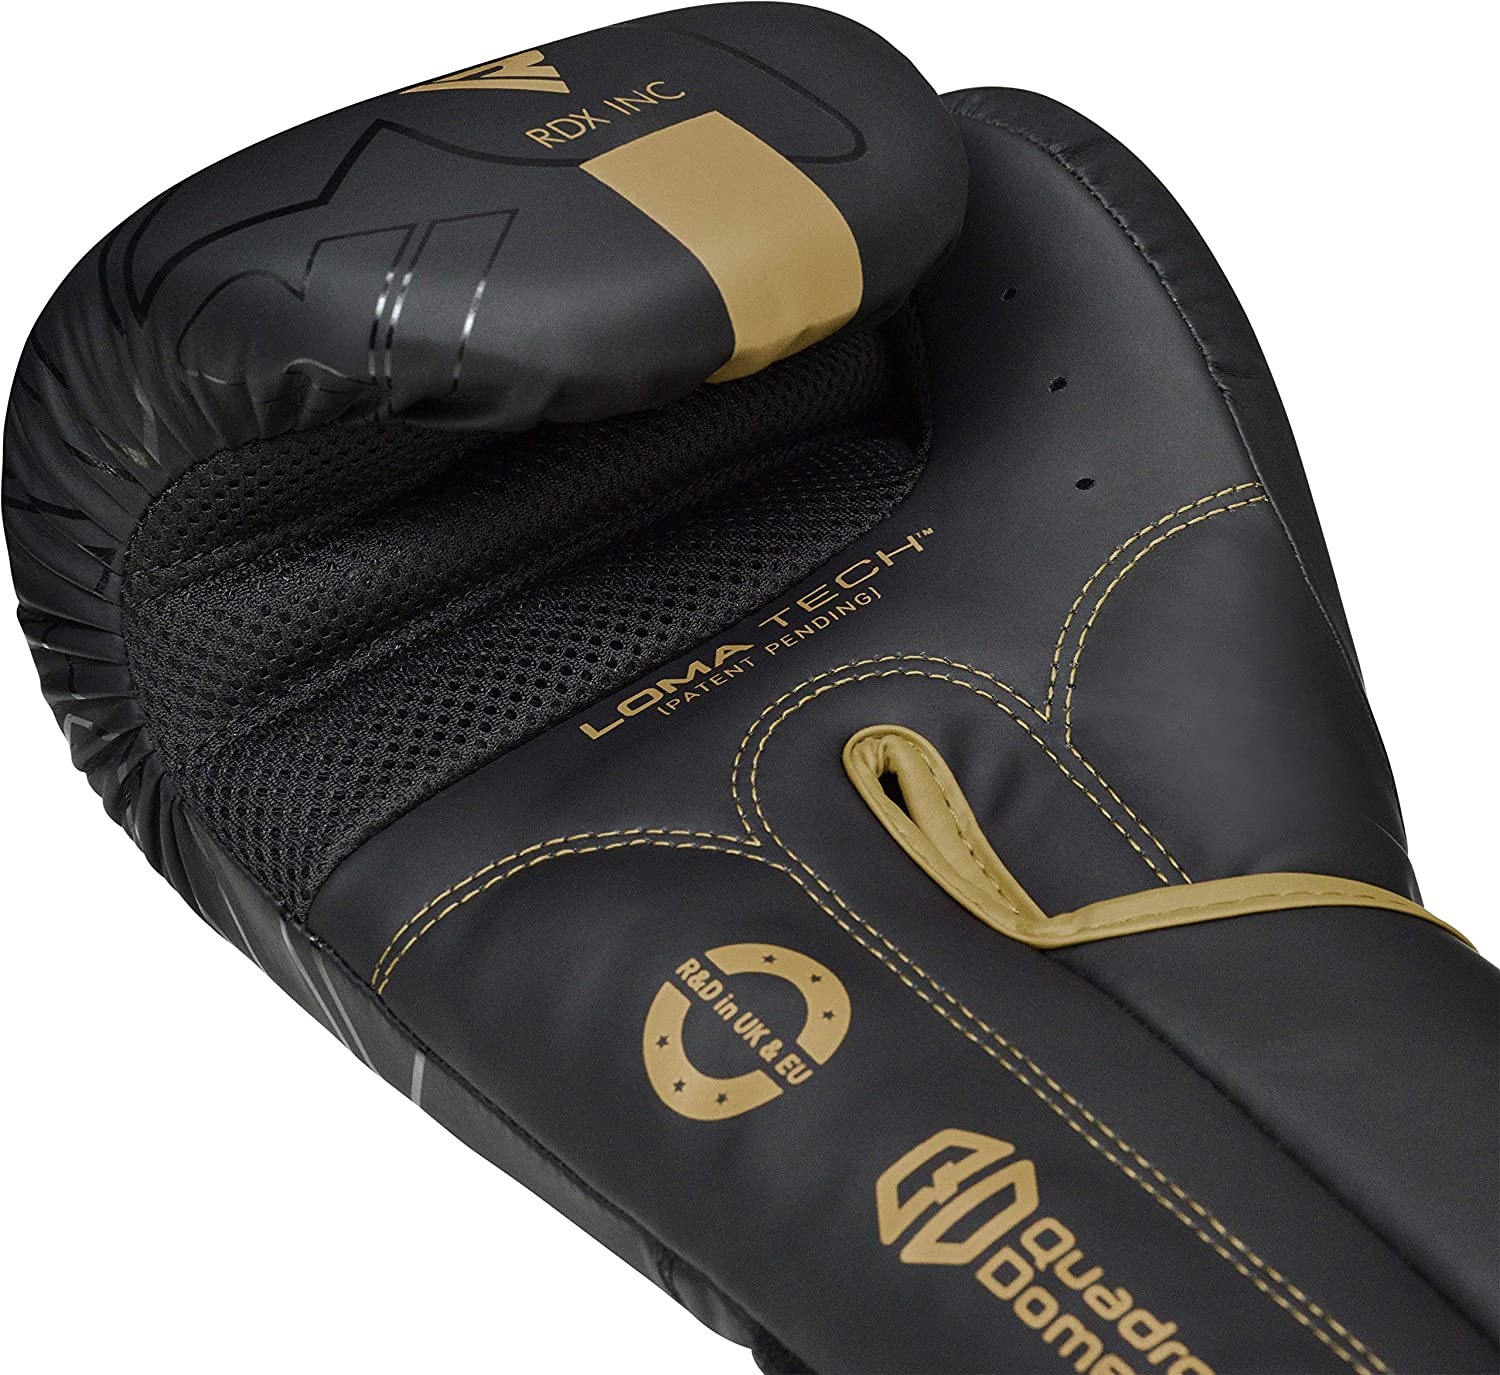 Punch Bag Double End Ball Punching Fight Gloves Thai Pad MMA Focus Pads KARA Patent Pending Training Mitt for Kickboxing RDX Boxing Gloves Sparring and Muay Thai Maya Hide Leather